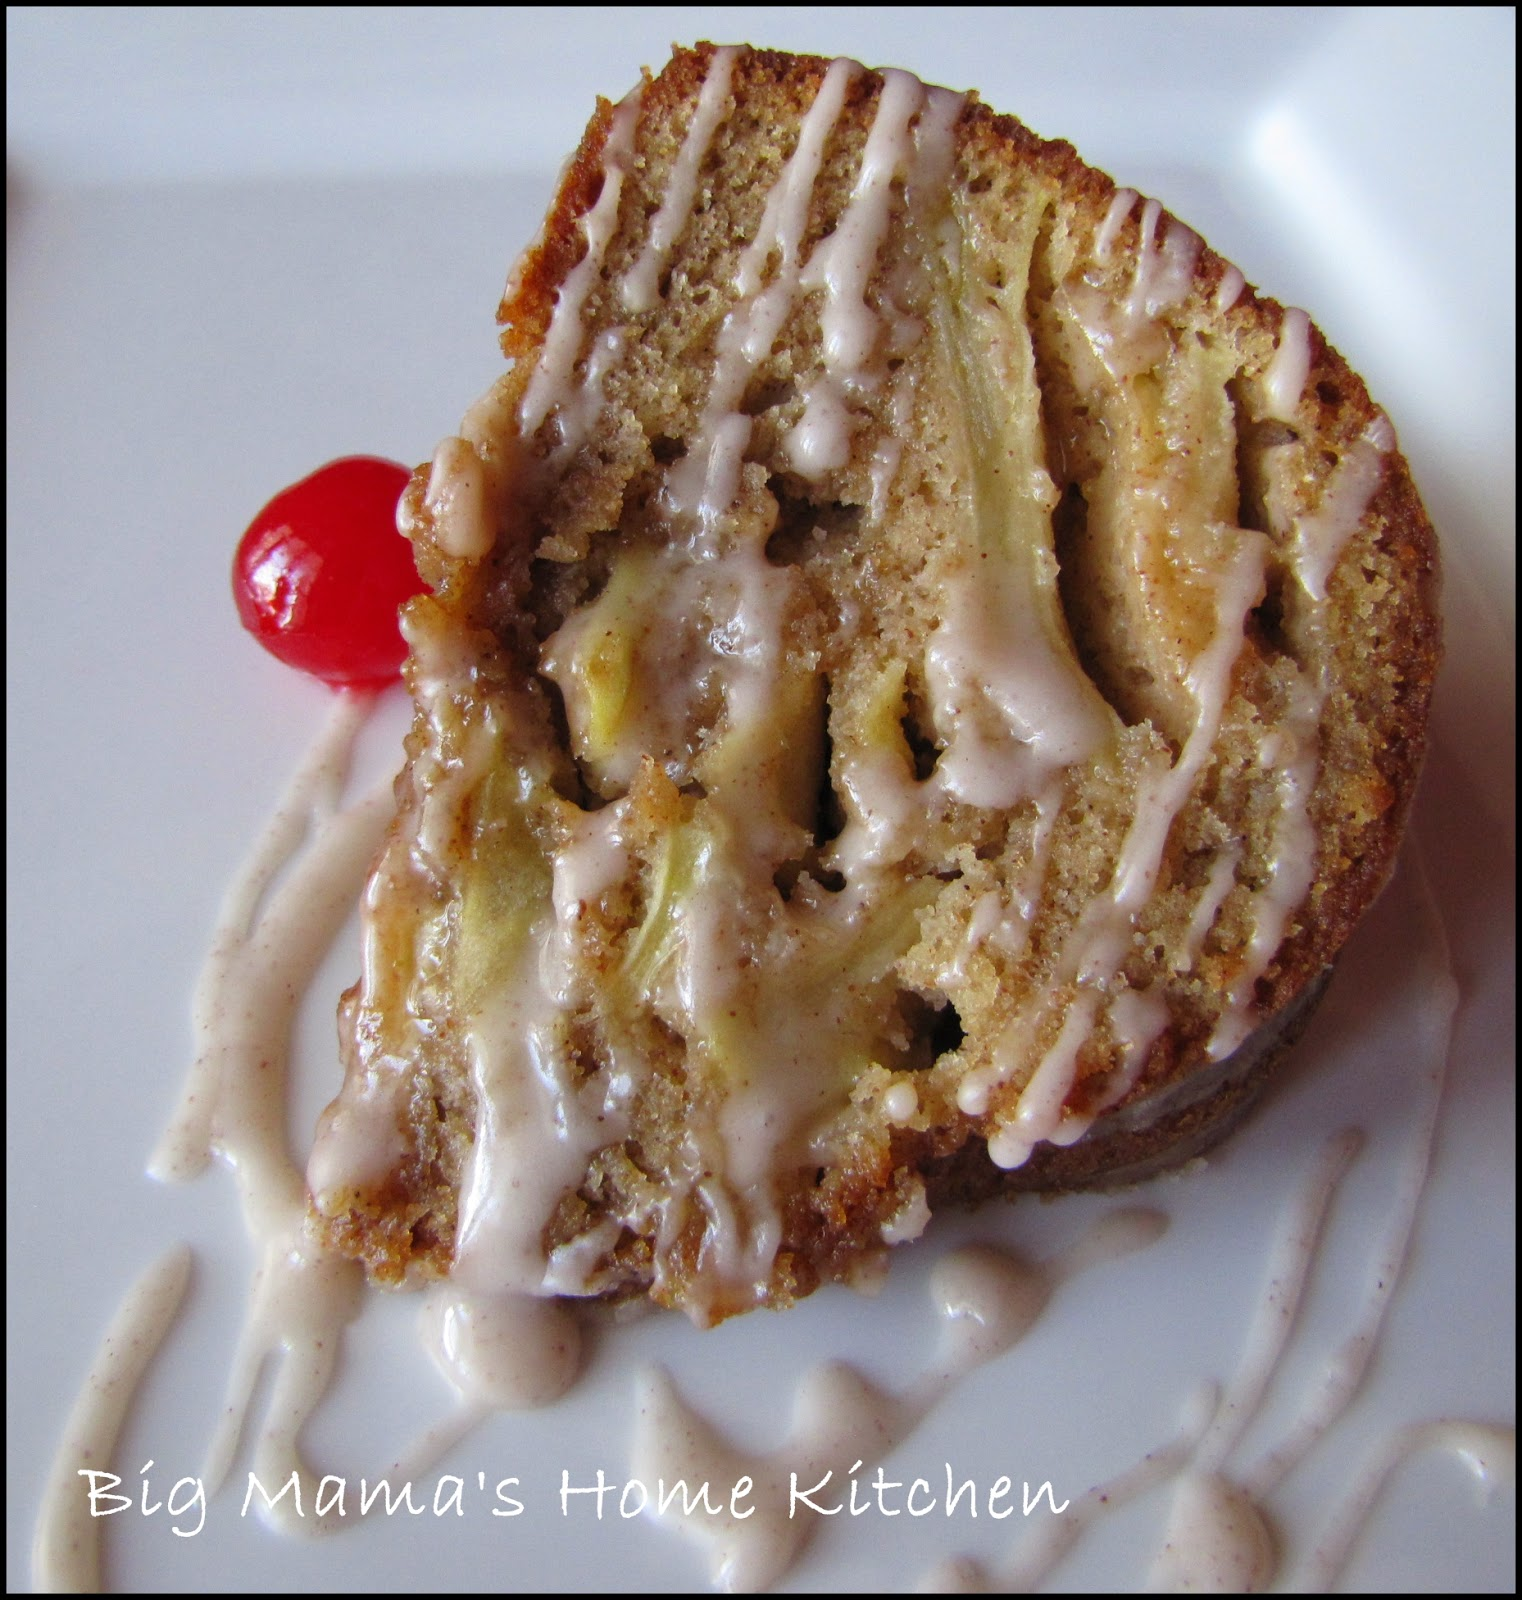 Big Mama's Home Kitchen: Apple~Cinnamon Bundt Cake with Cinnamon Glaze